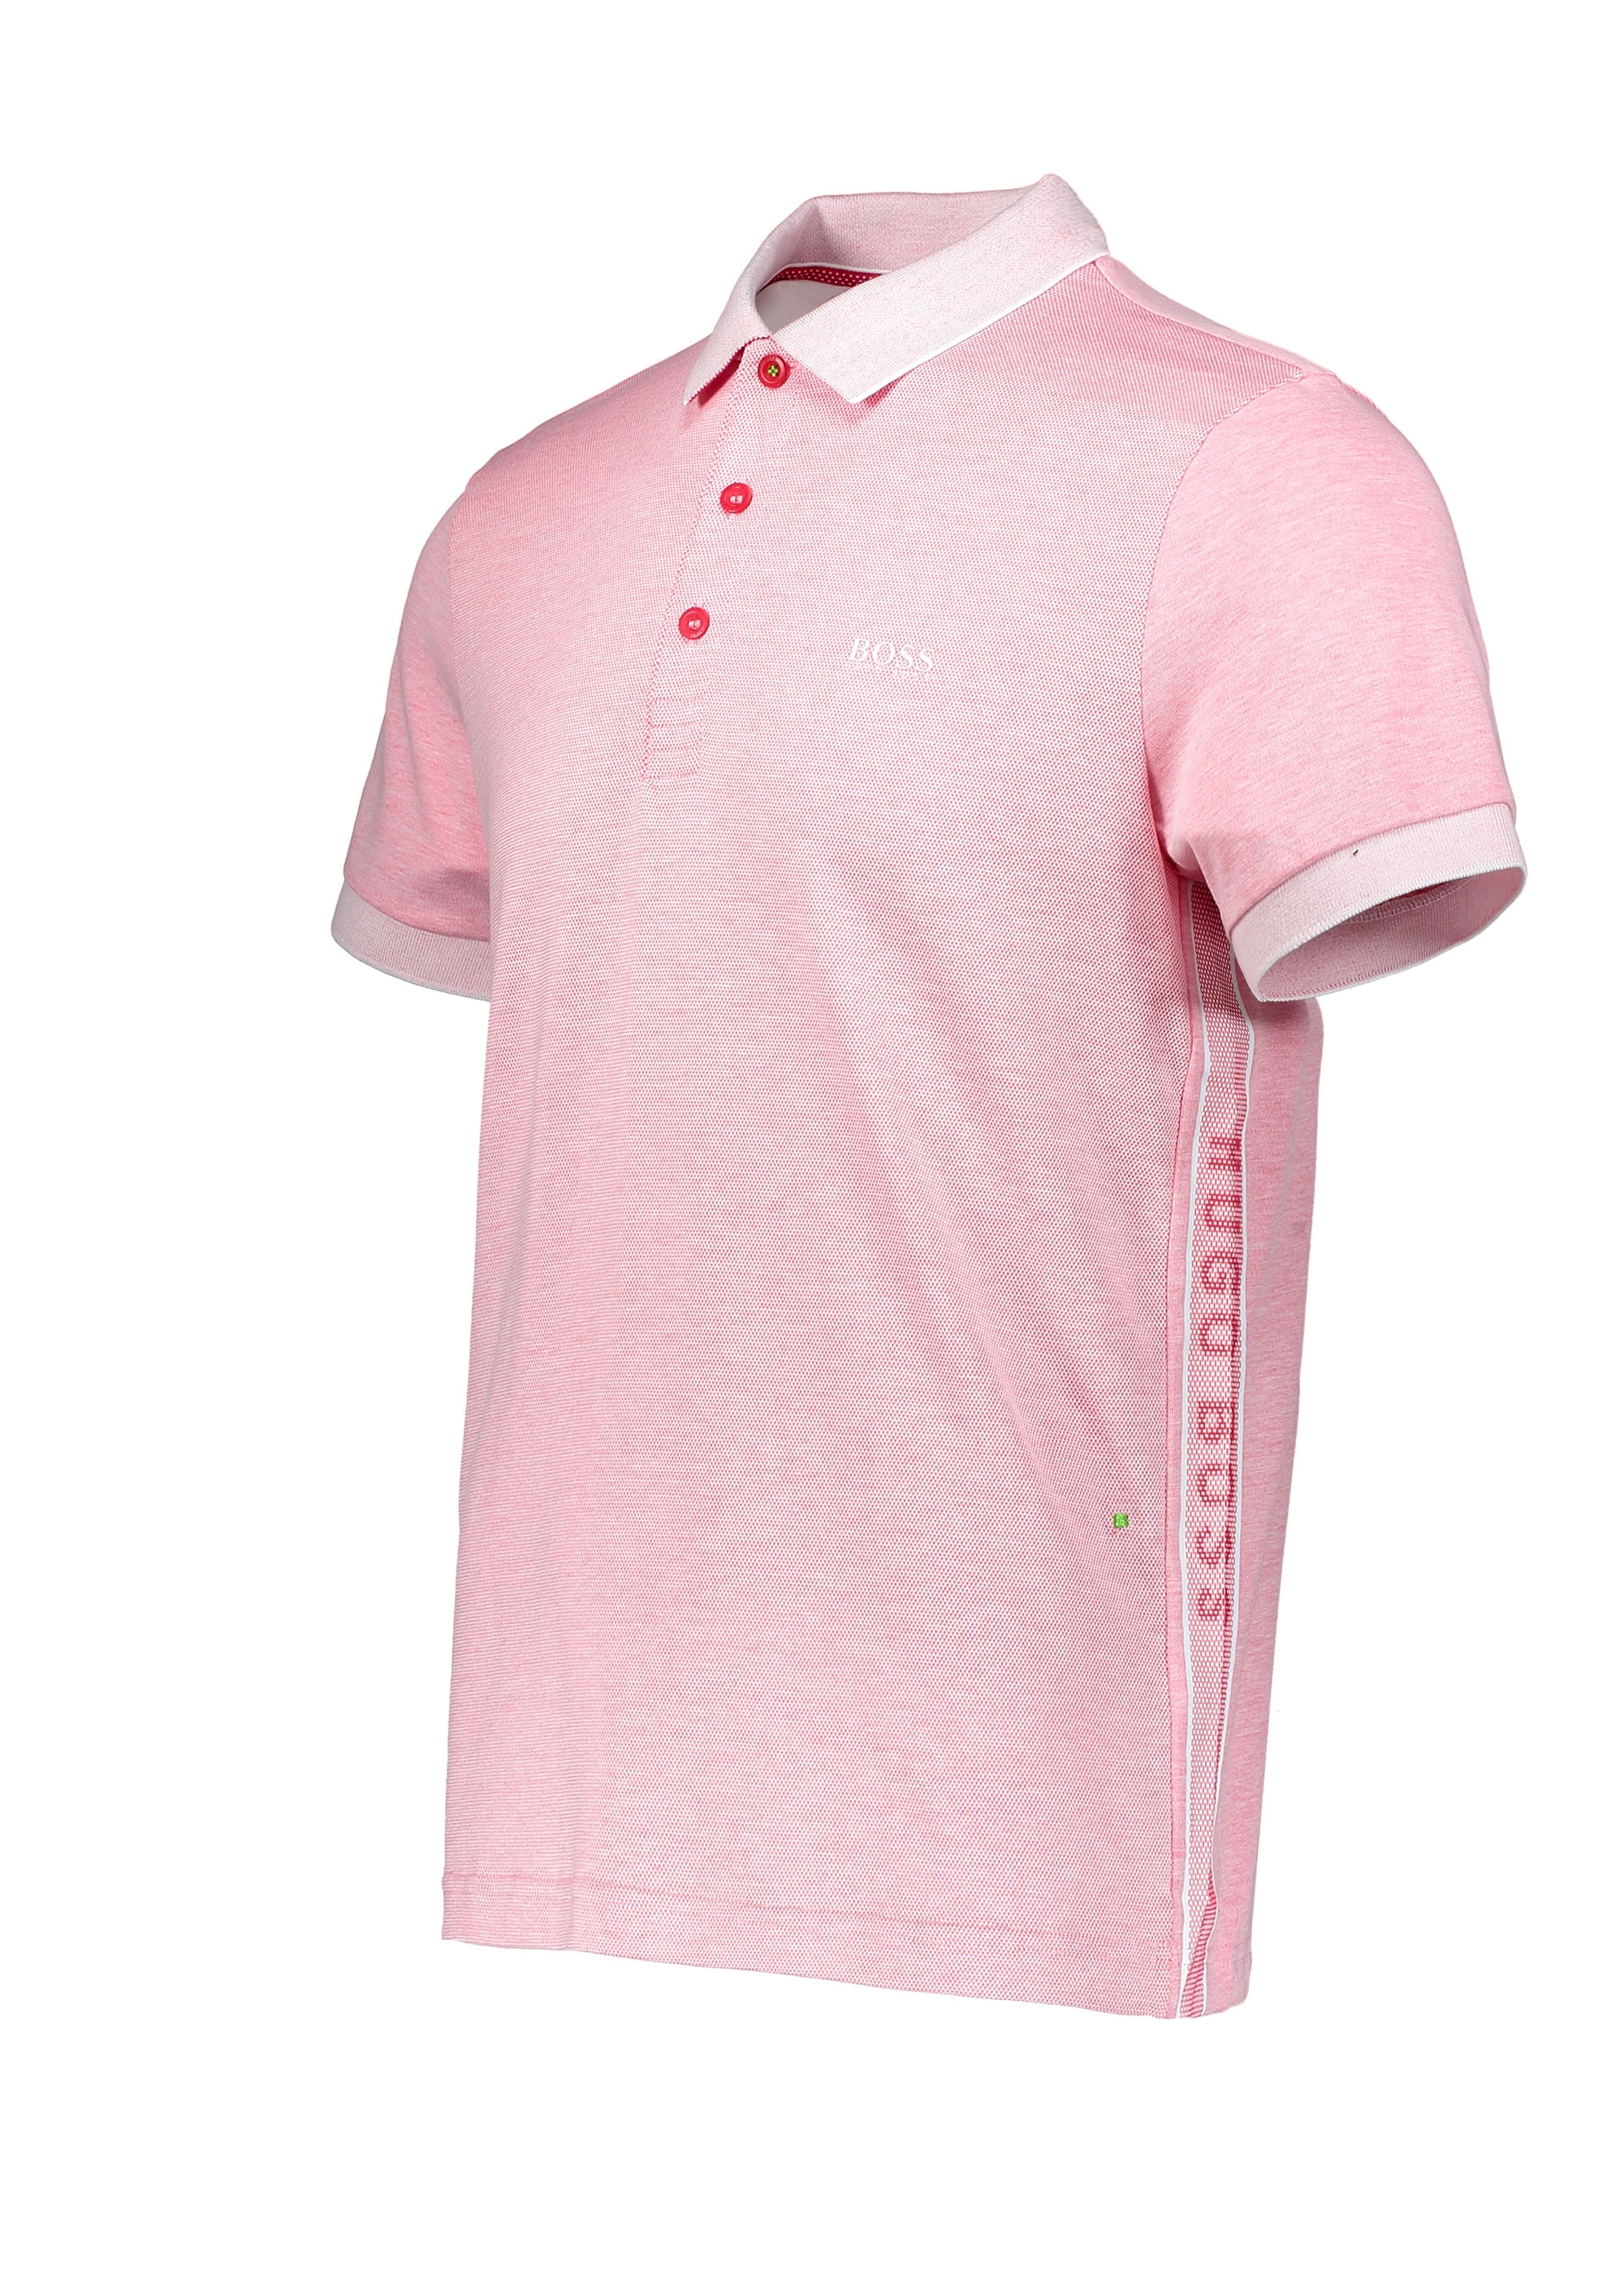 5d028f99b BOSS Paddy 1 Polo Shirt - Bright Pink - Polo Shirts from Triads UK